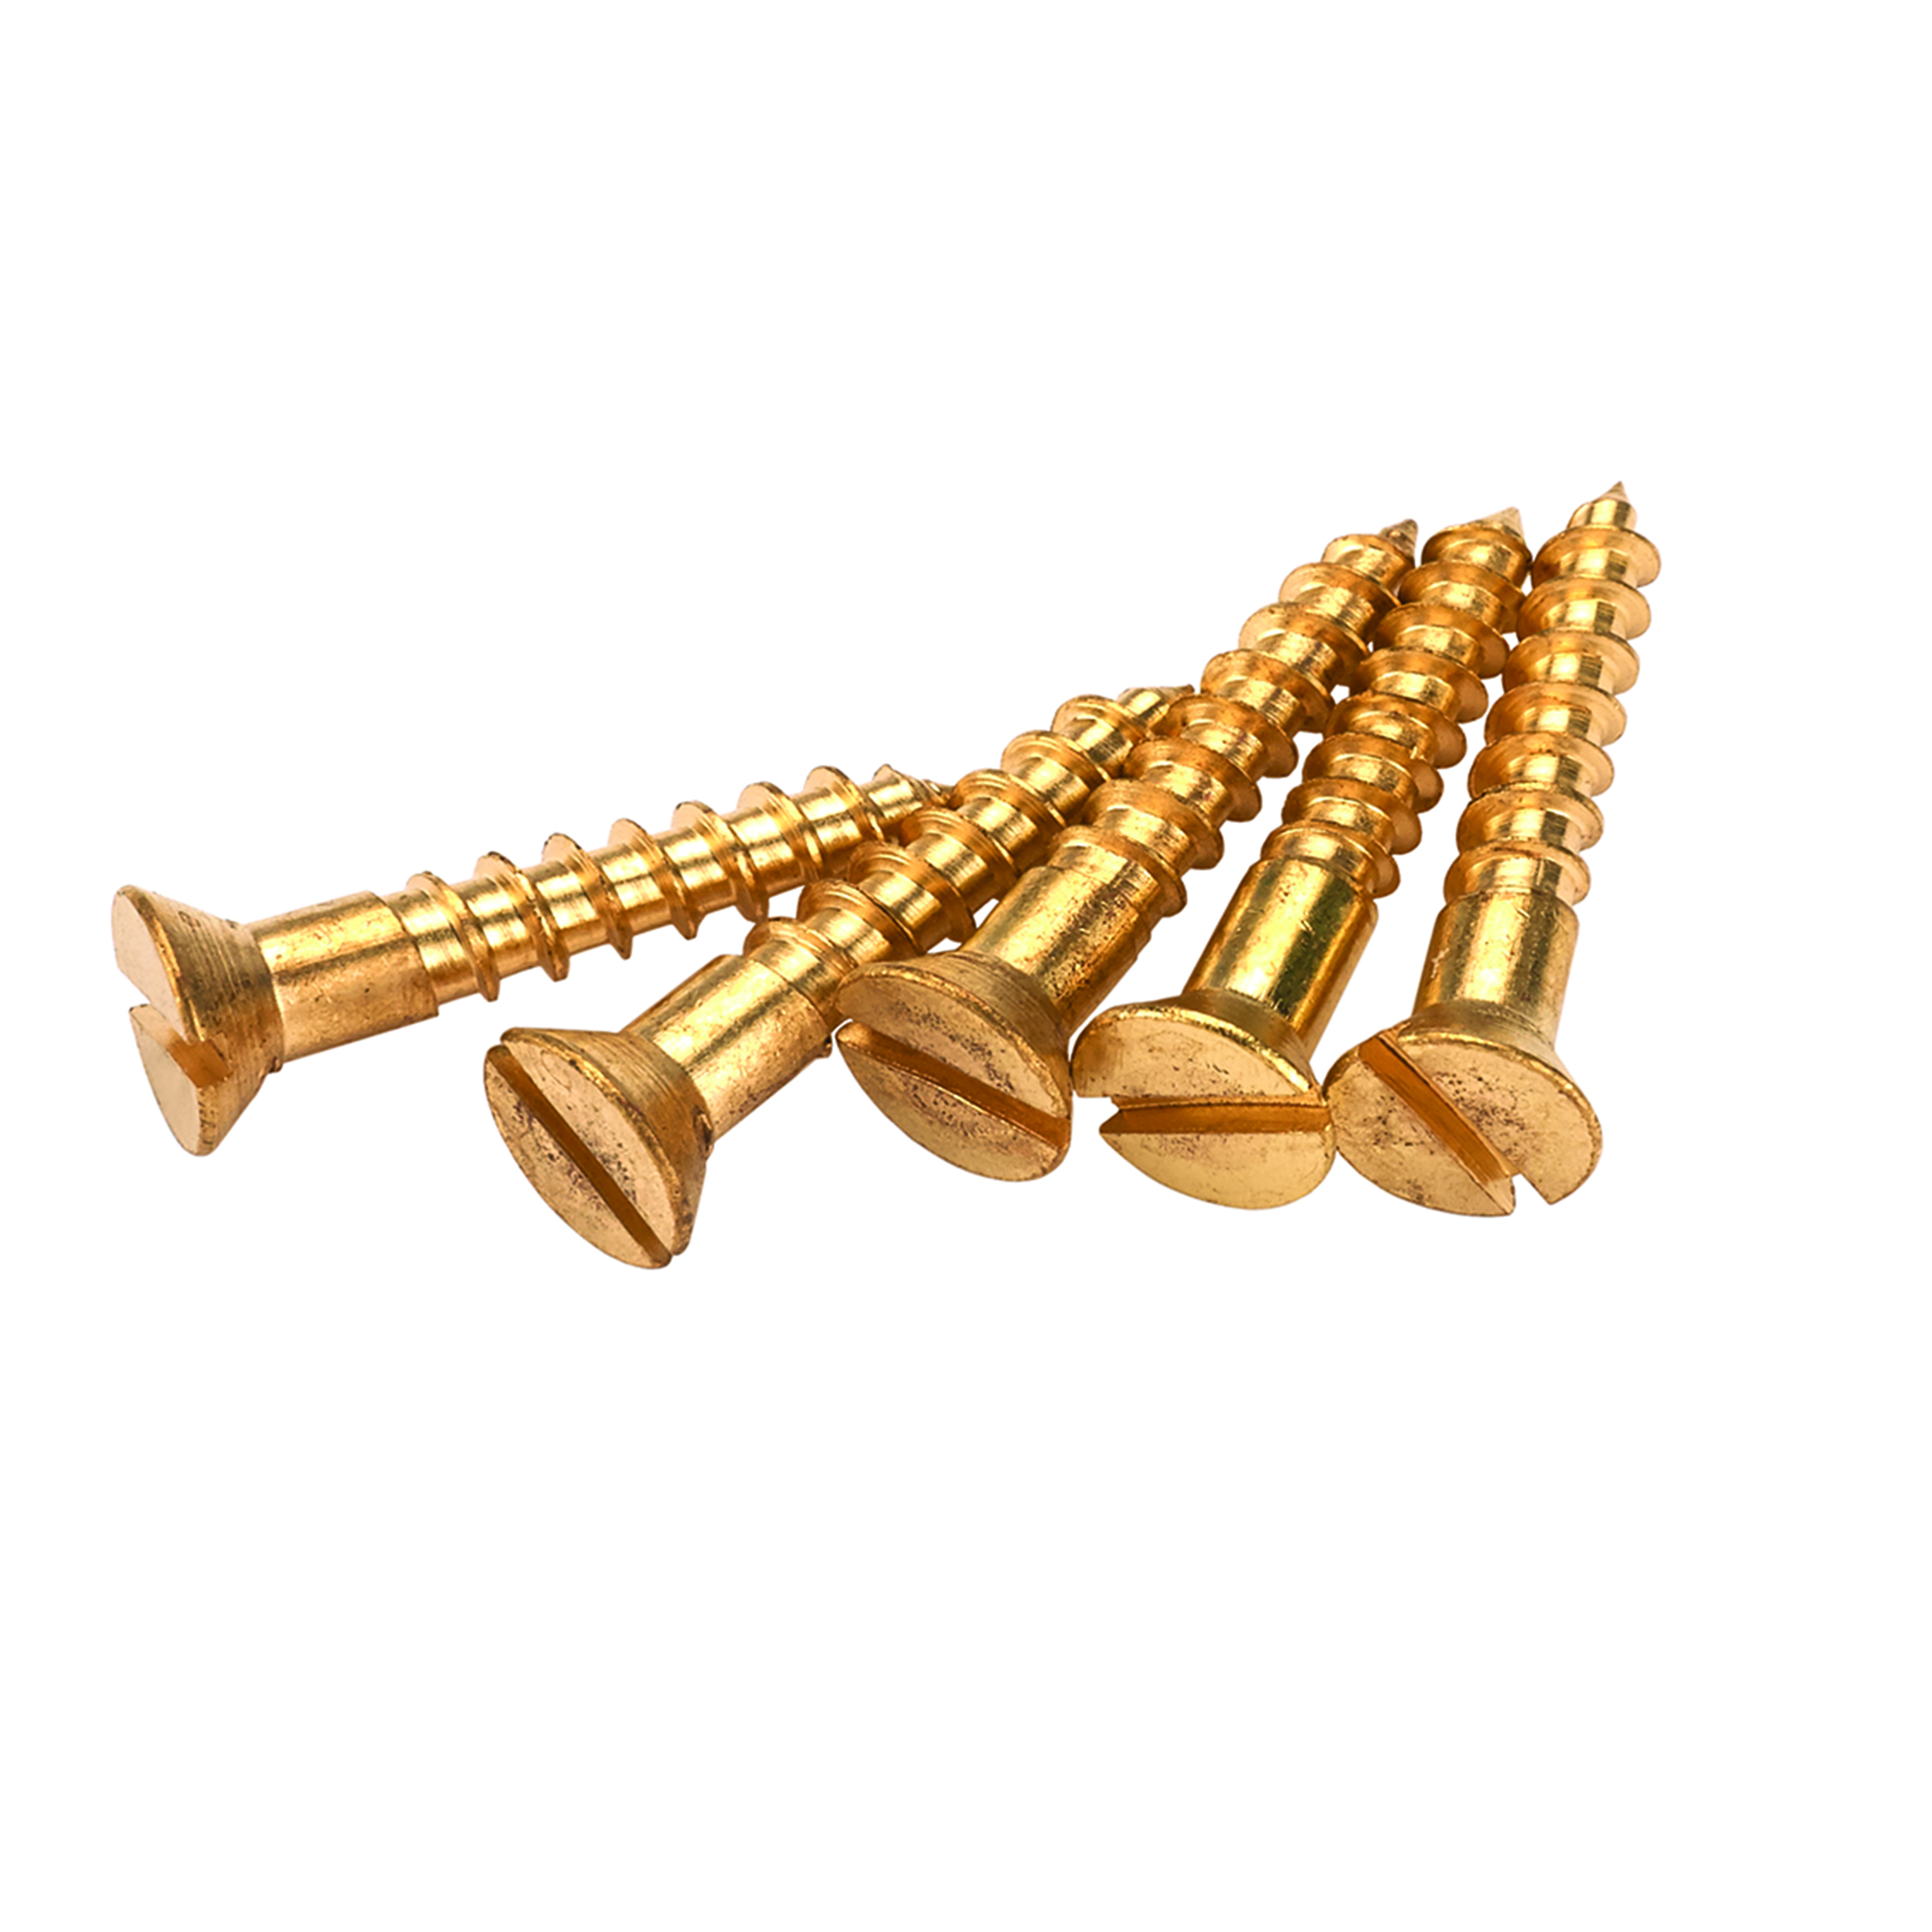 Solid Brass Screws #6 x 3/4